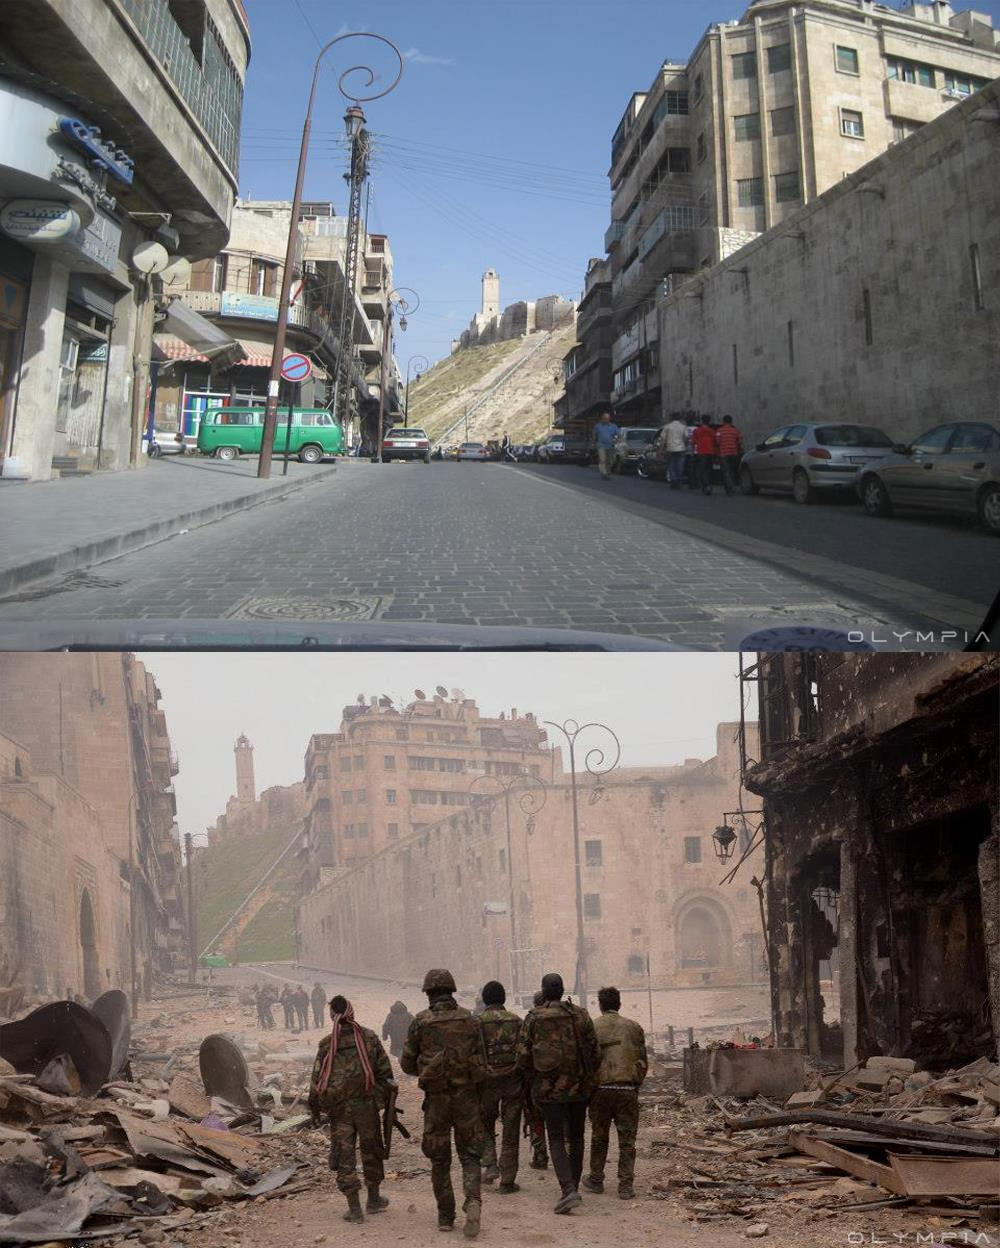 Aleppo: Symbol of Action and Inaction, Aleppo: Symbol of Action and Inaction, Middle East Politics & Culture Journal